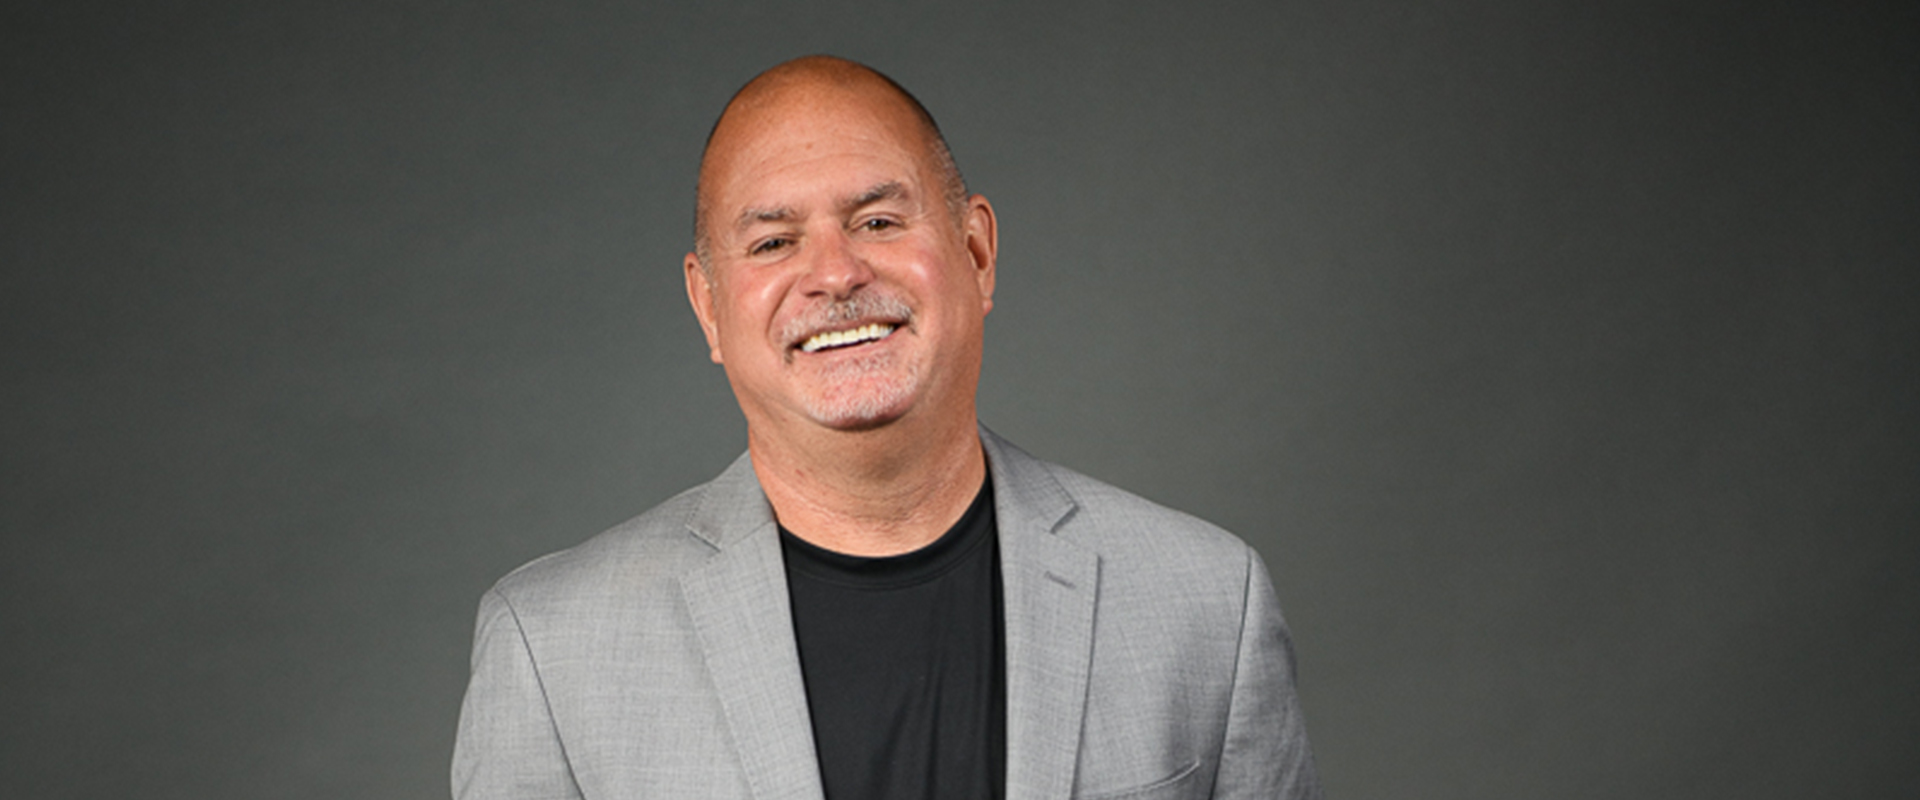 Bob Eschino, Medically Correct President and Co-Founder, dressed in a grey suit for a headshot.